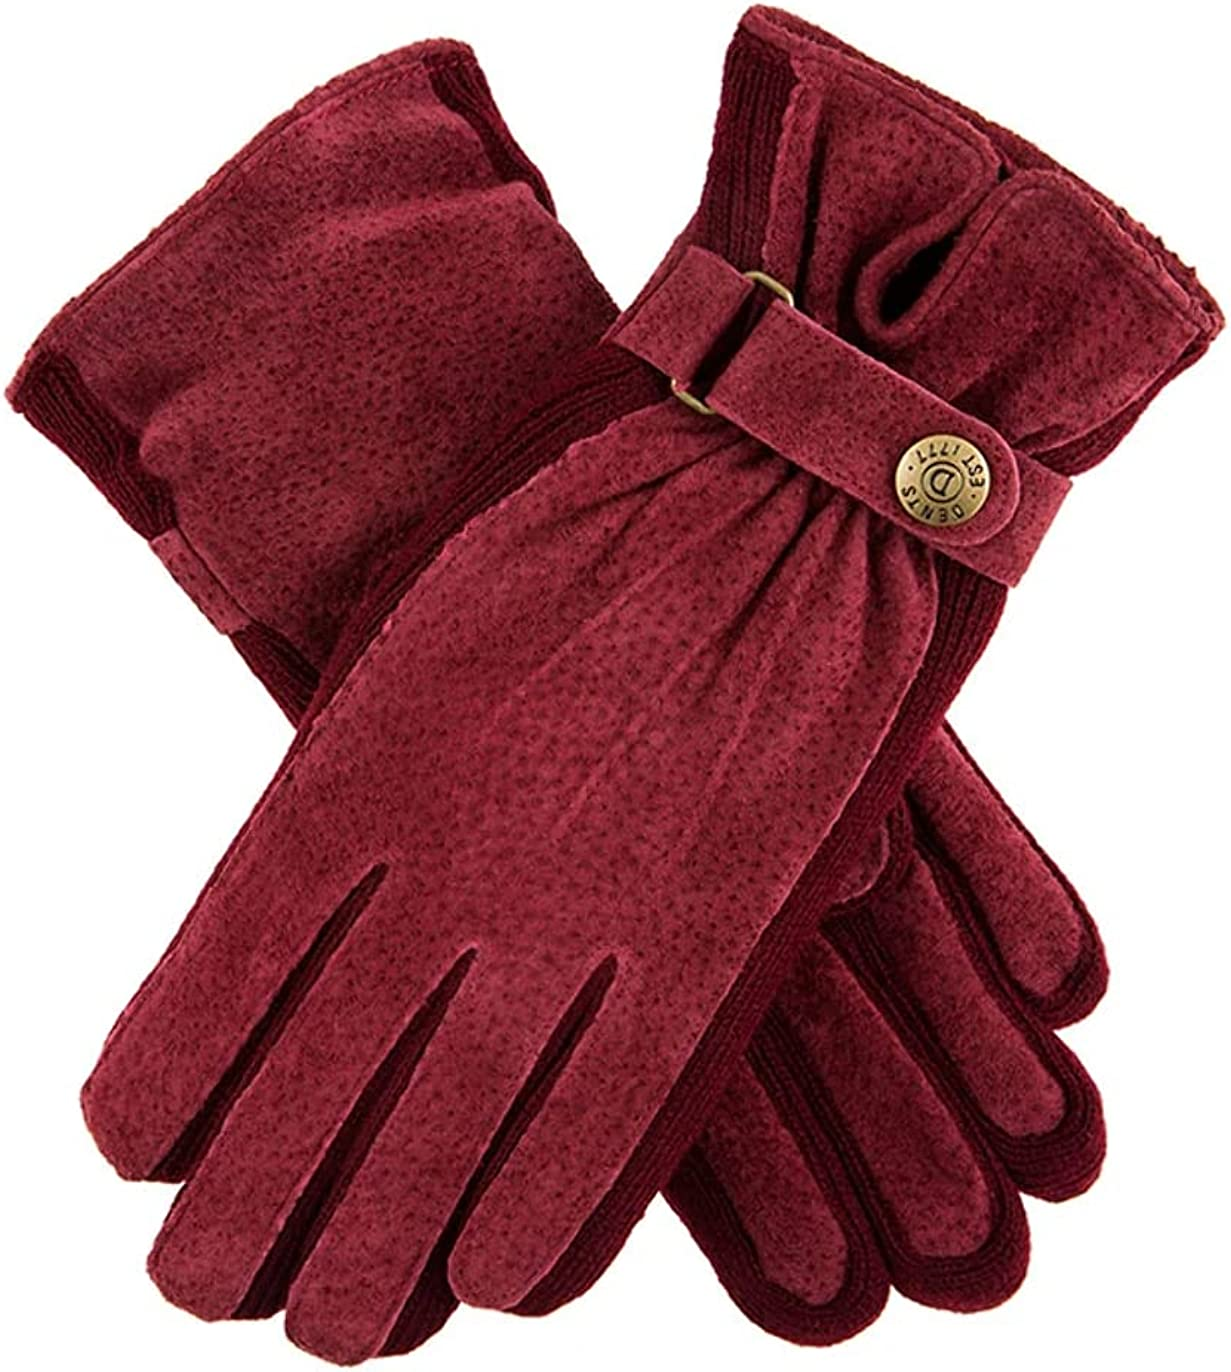 Dents Max 59% OFF Womens Laura New Orleans Mall Suede Side S Claret Walking Gloves Knit